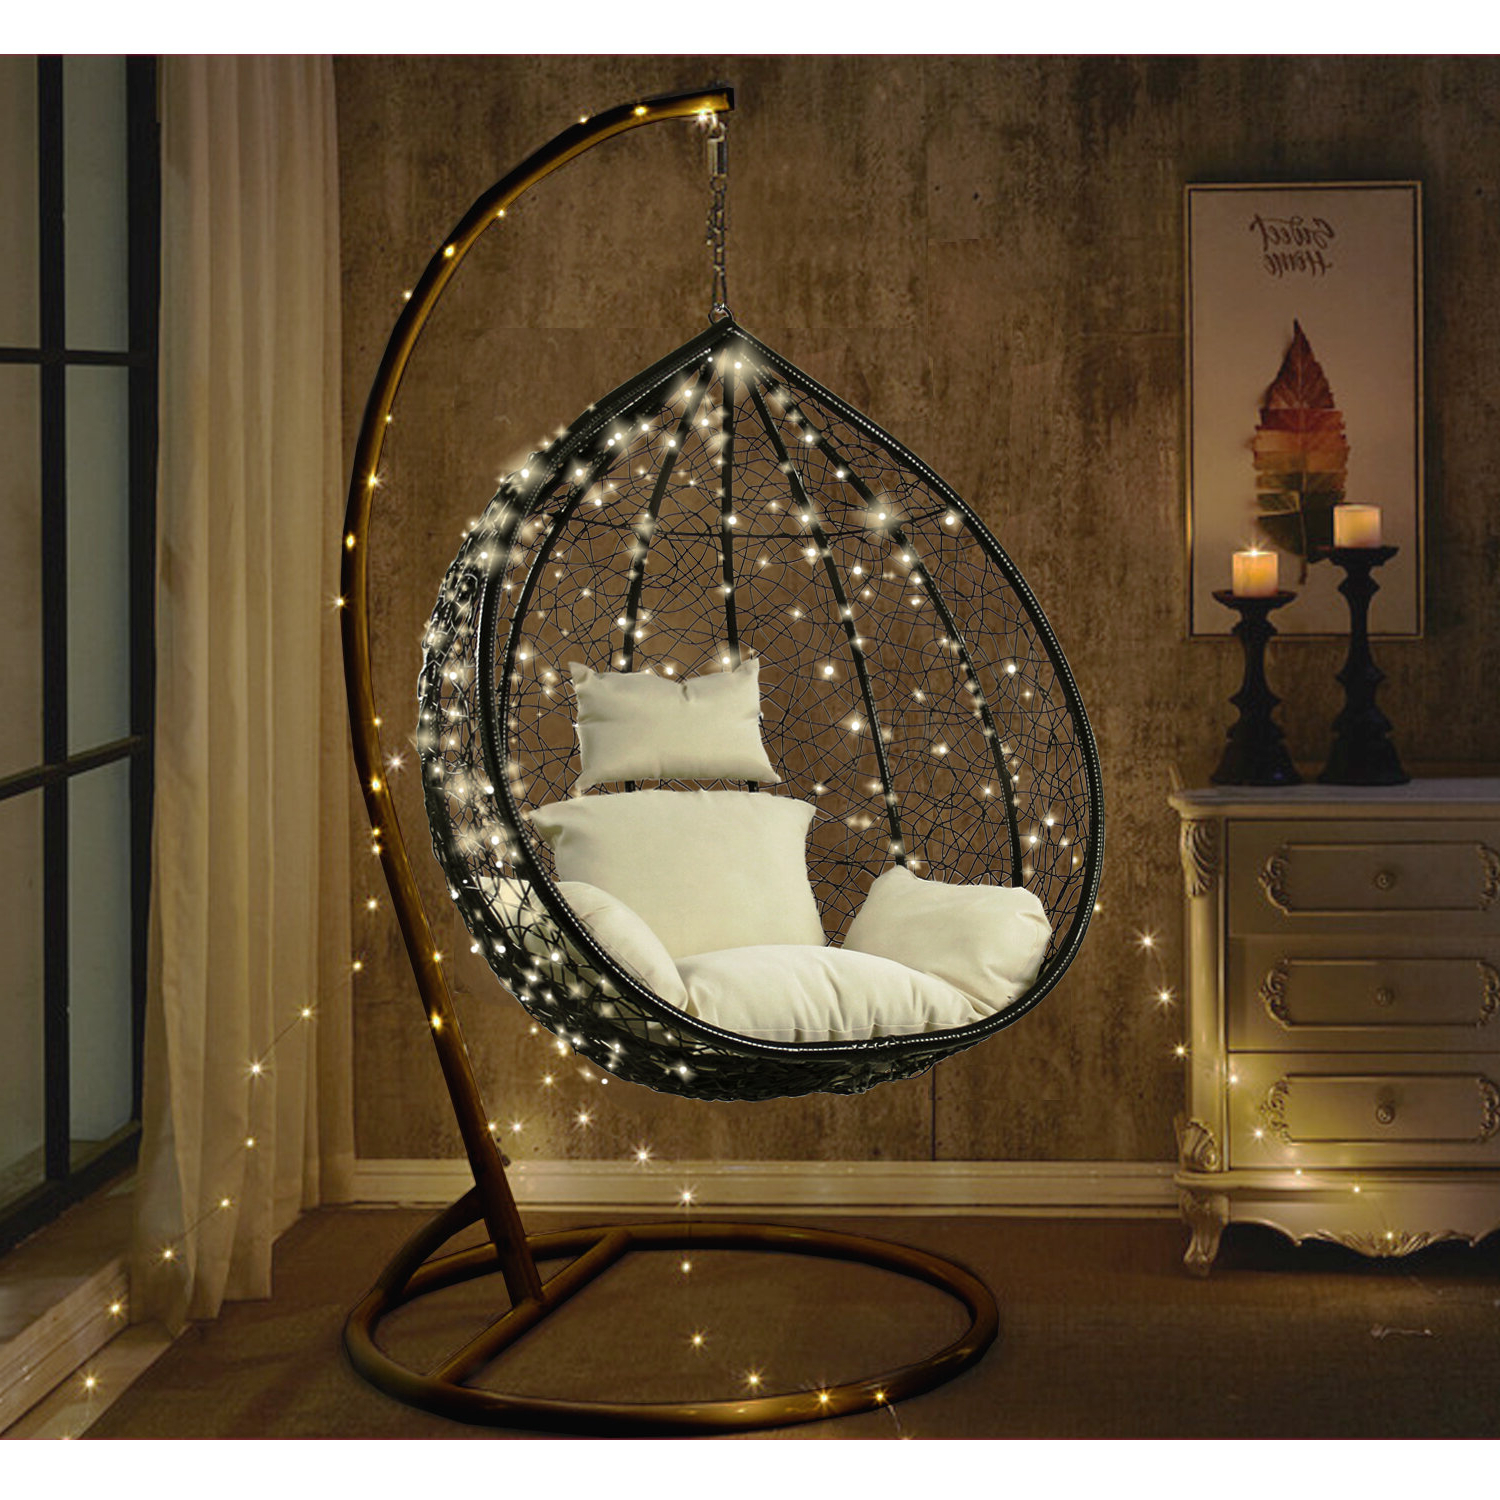 Hobbs Outdoor Wicker Plastic Tear Porch Swing With Stand Inside Most Recent Outdoor Wicker Plastic Tear Porch Swings With Stand (View 7 of 30)